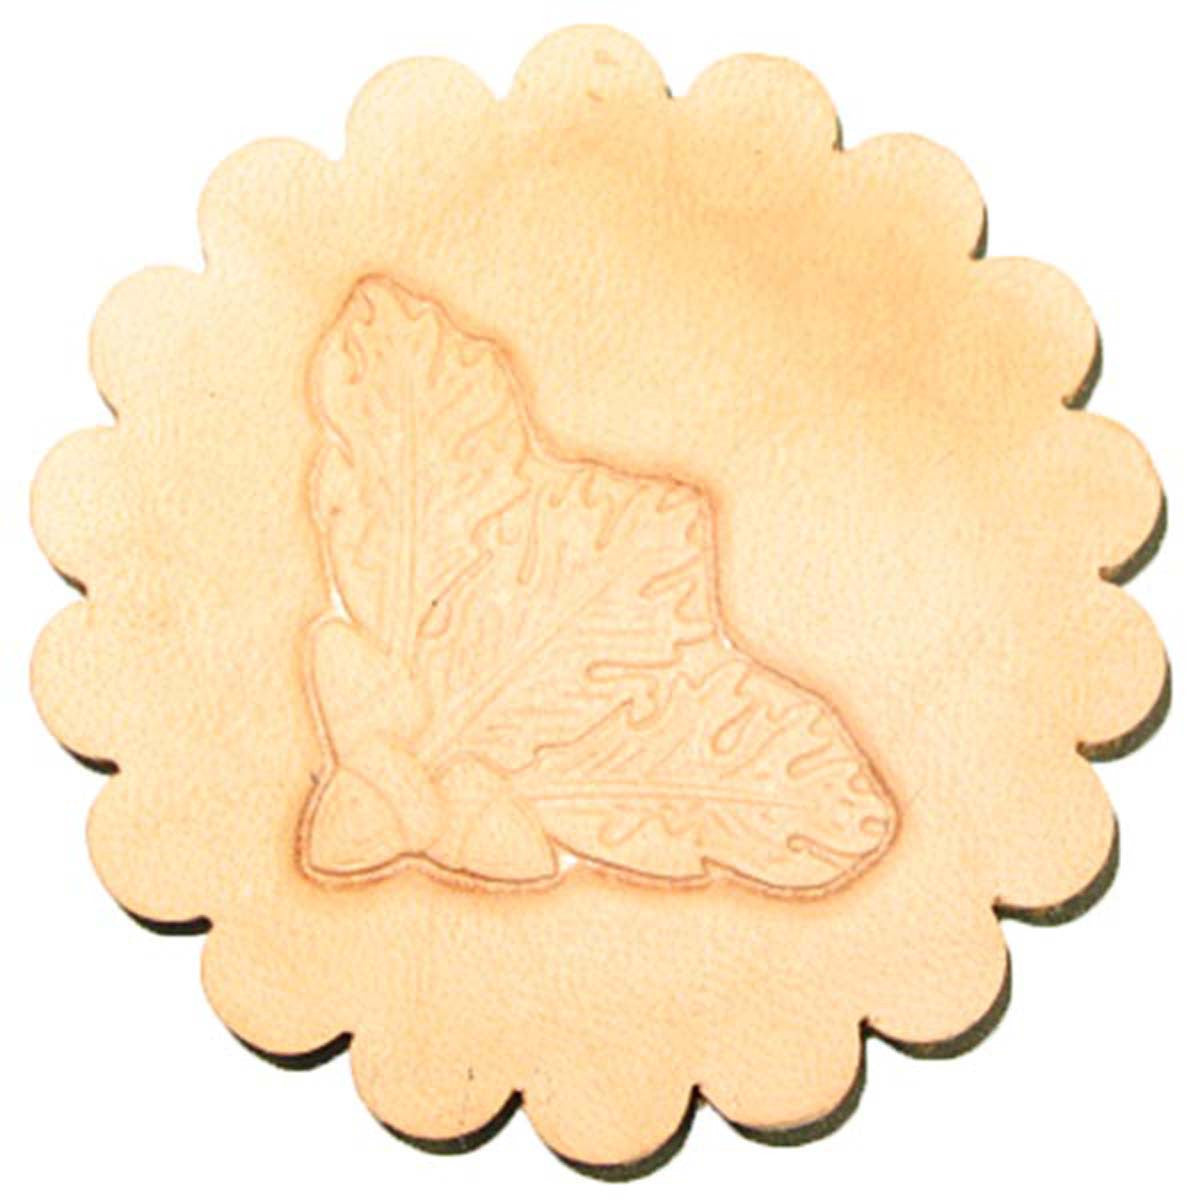 Image of 8536-00 - Oak Leaf Corner 3-D Stamp 8536-00